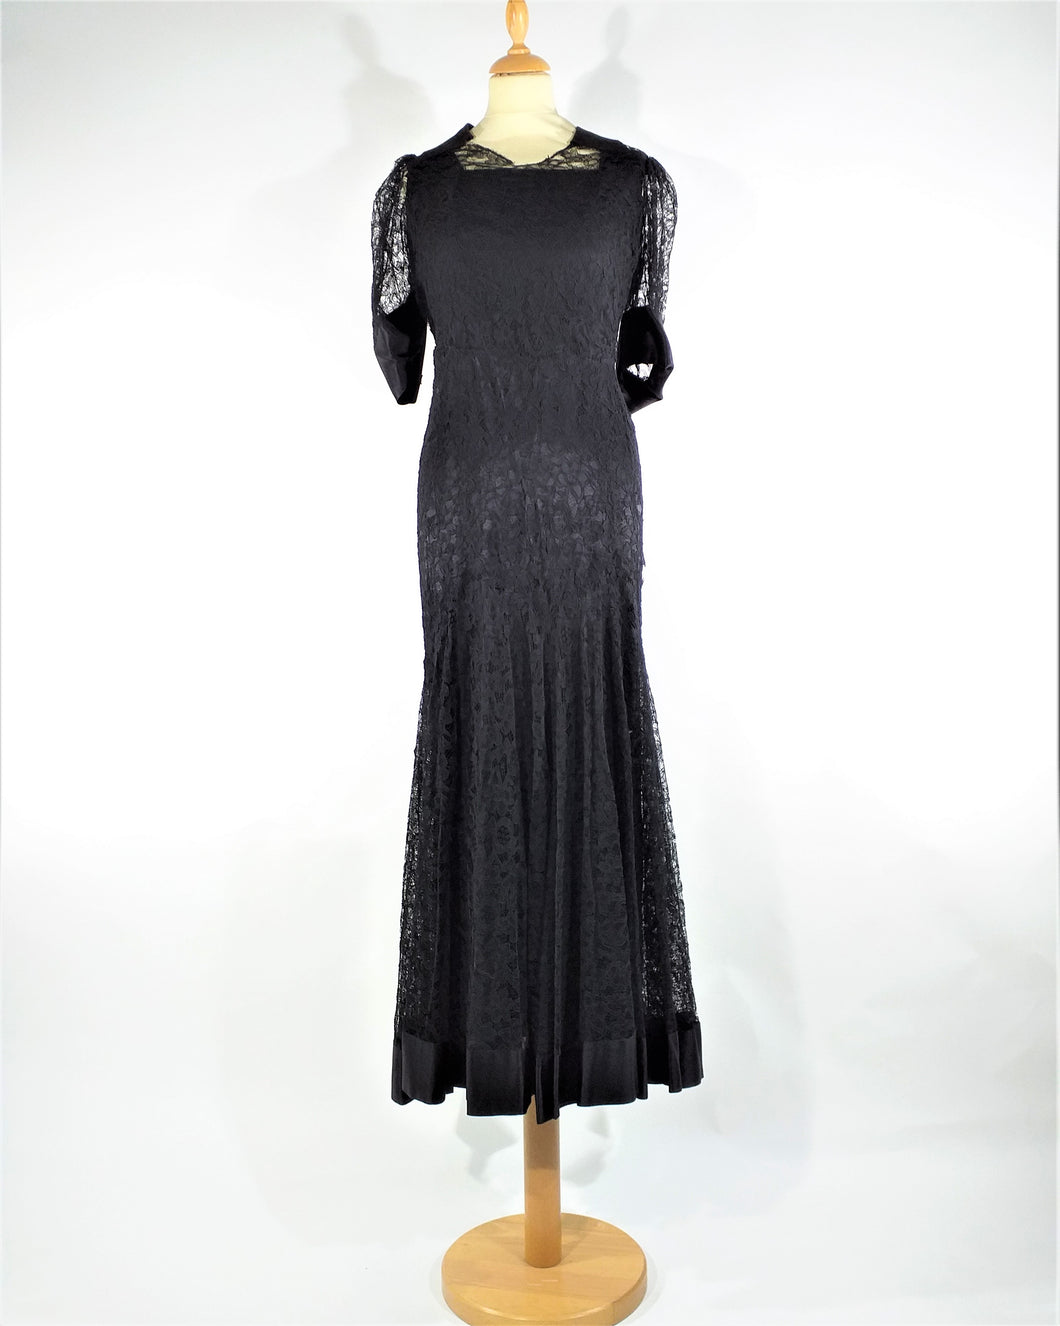 Belle robe en dentelles noires '1930 Beautiful black lace dress